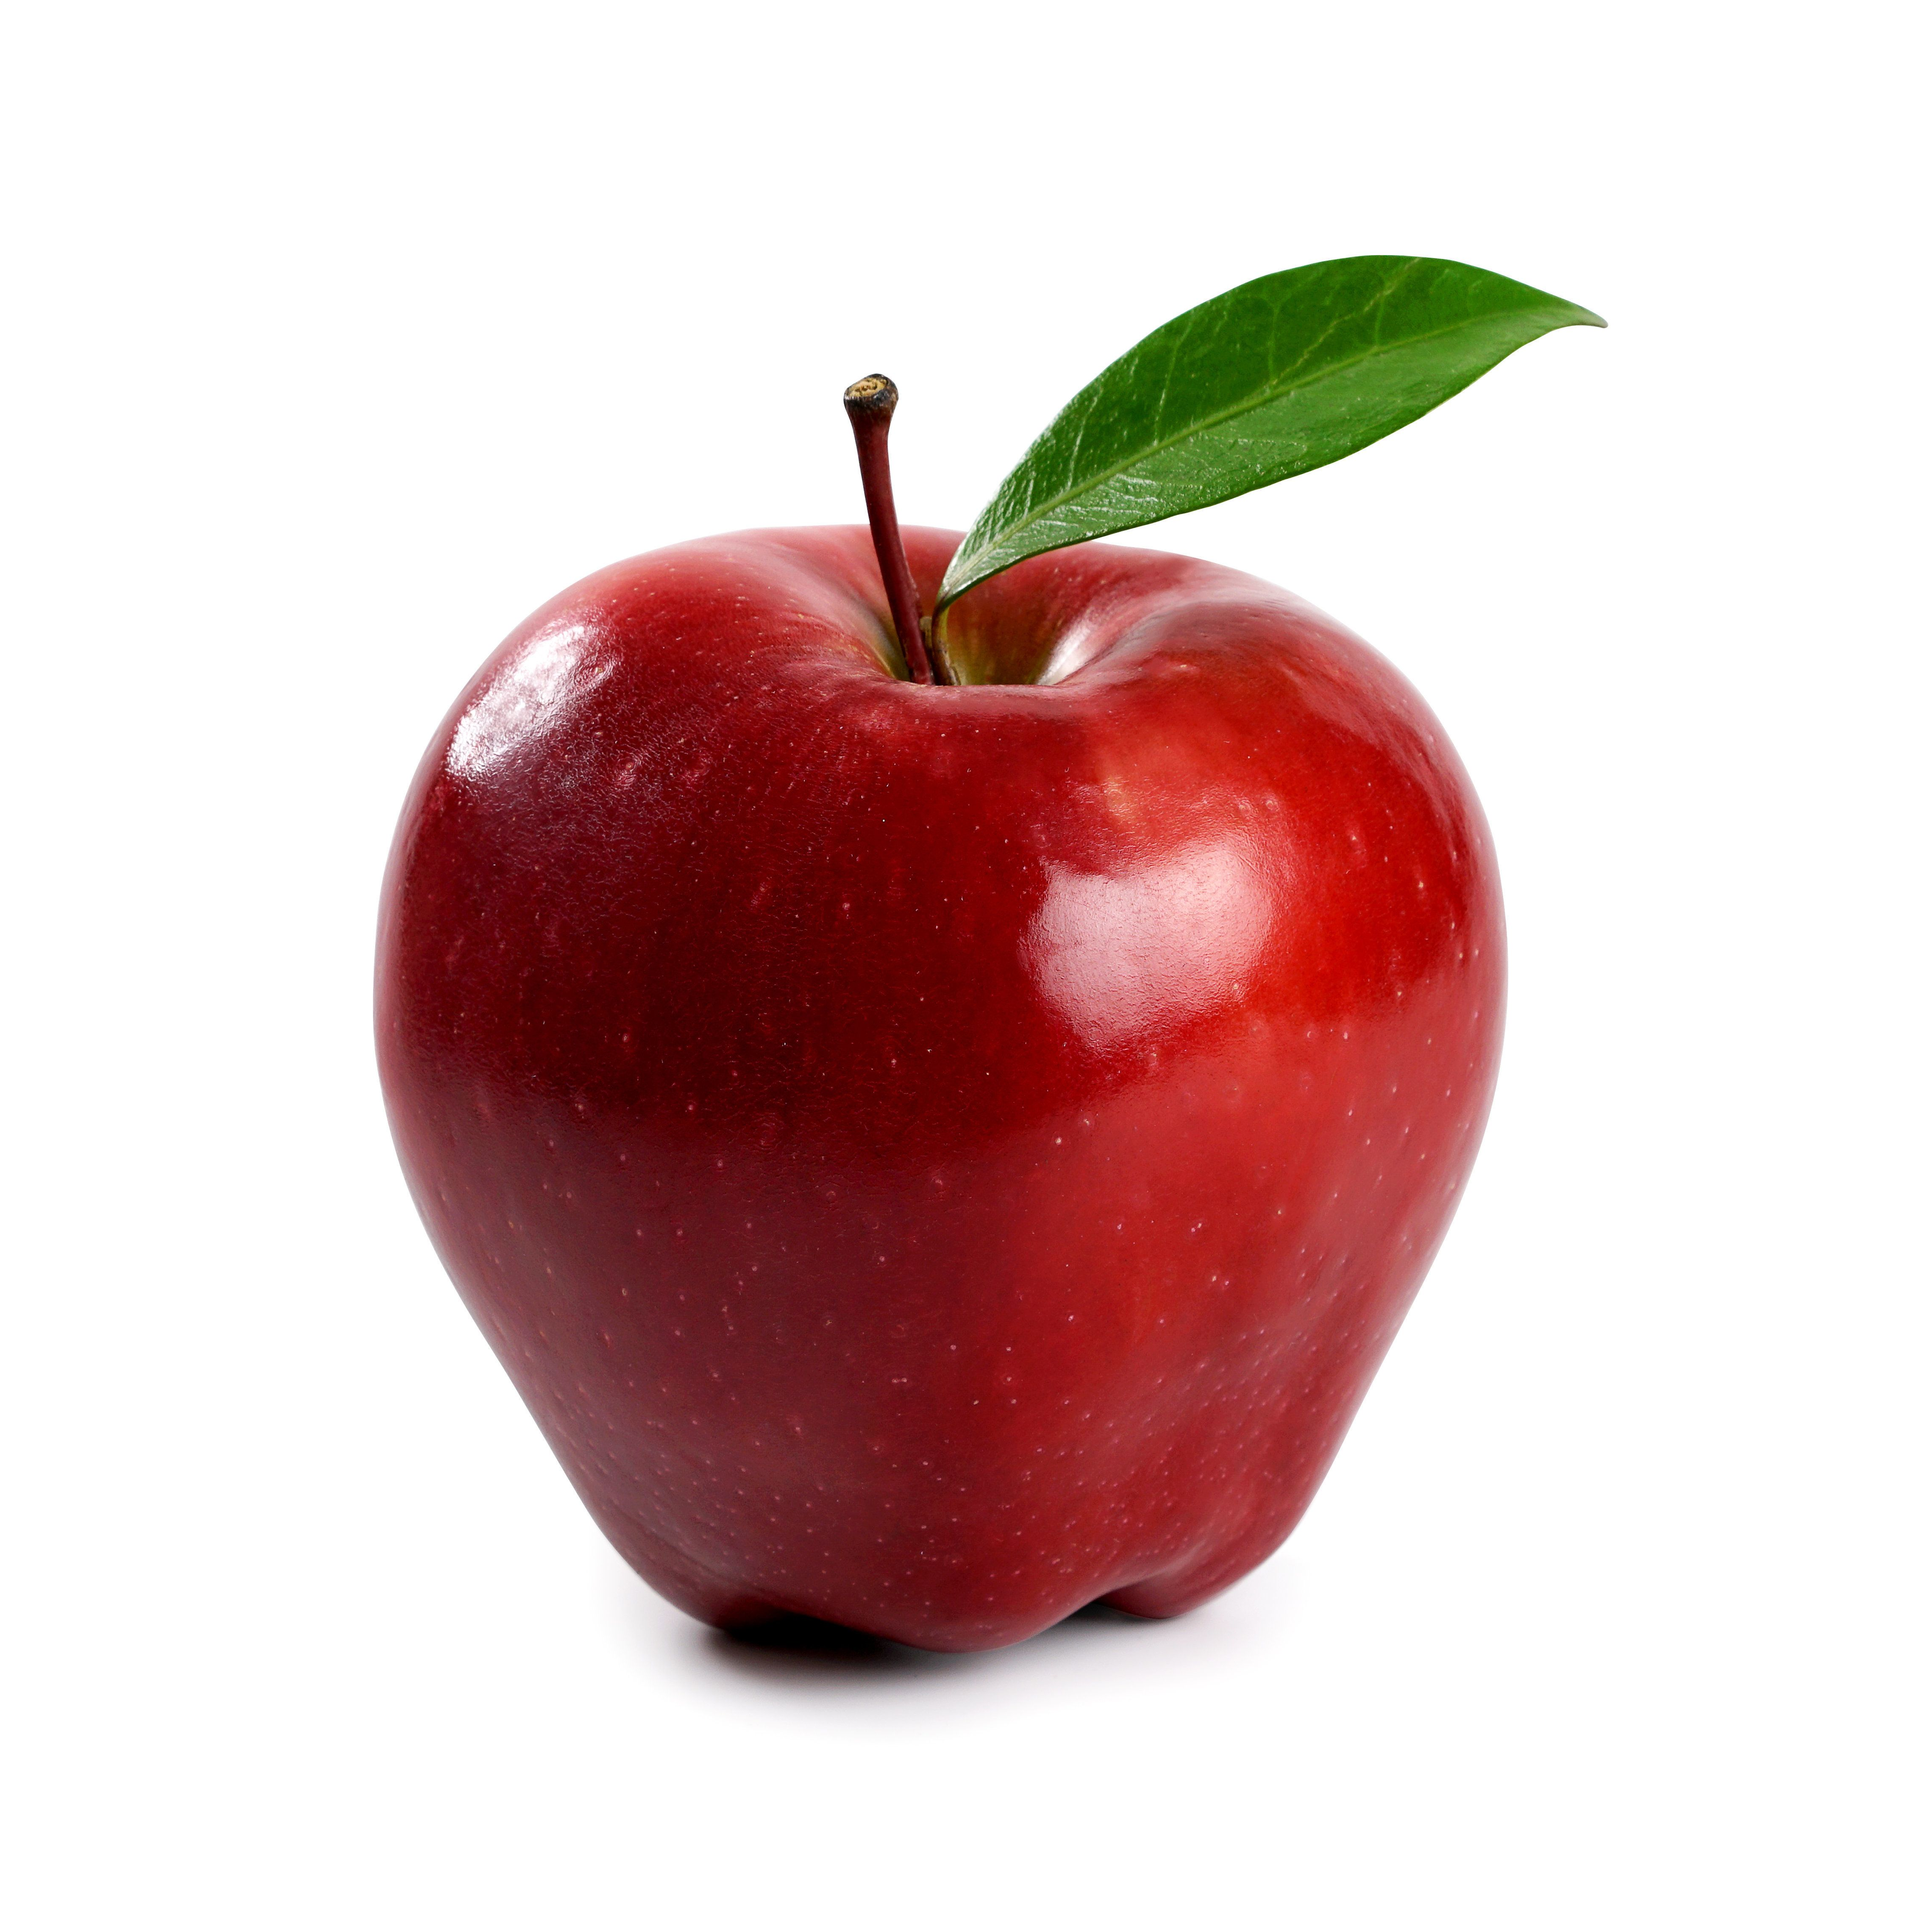 """The Red Delicious apple is """"gorgeous and very inviting, but it's kind of like you think you're buying a Cor"""